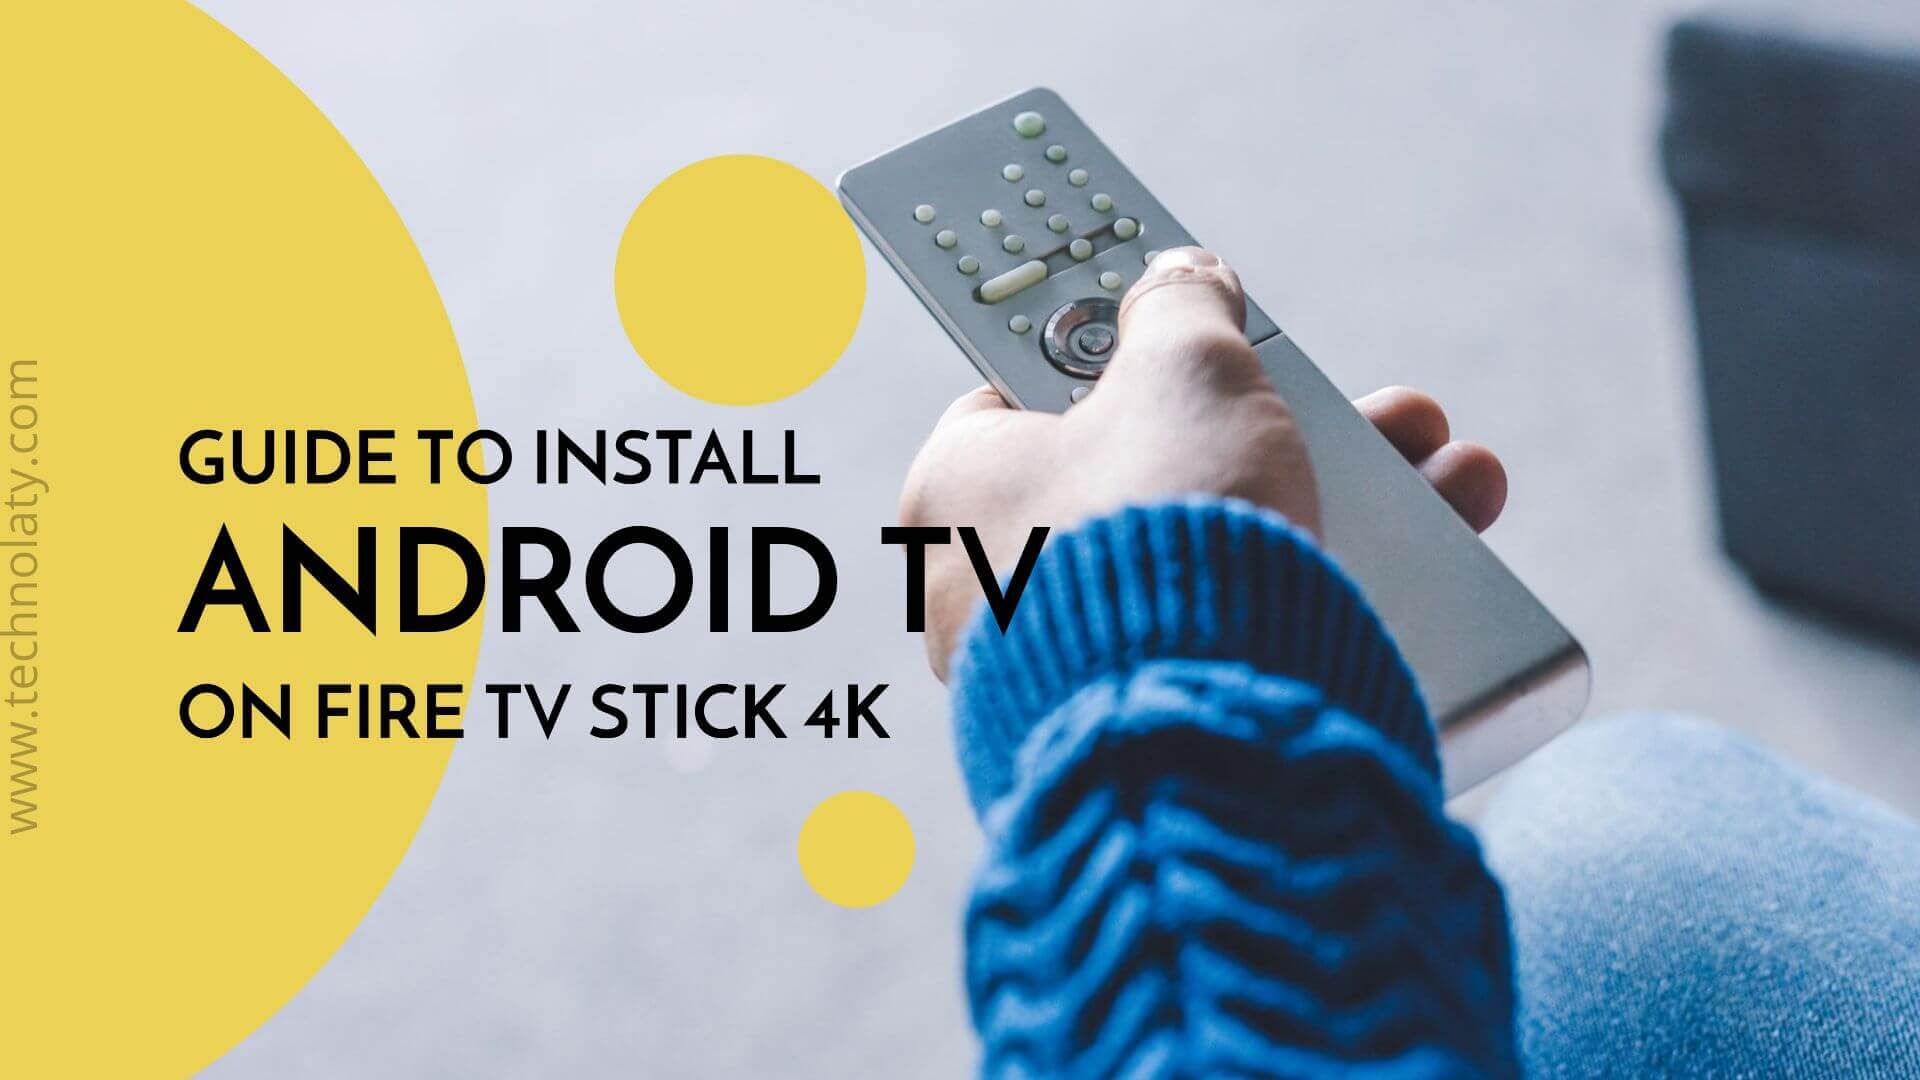 how to Install Android TV On Fire TV Stick 4K